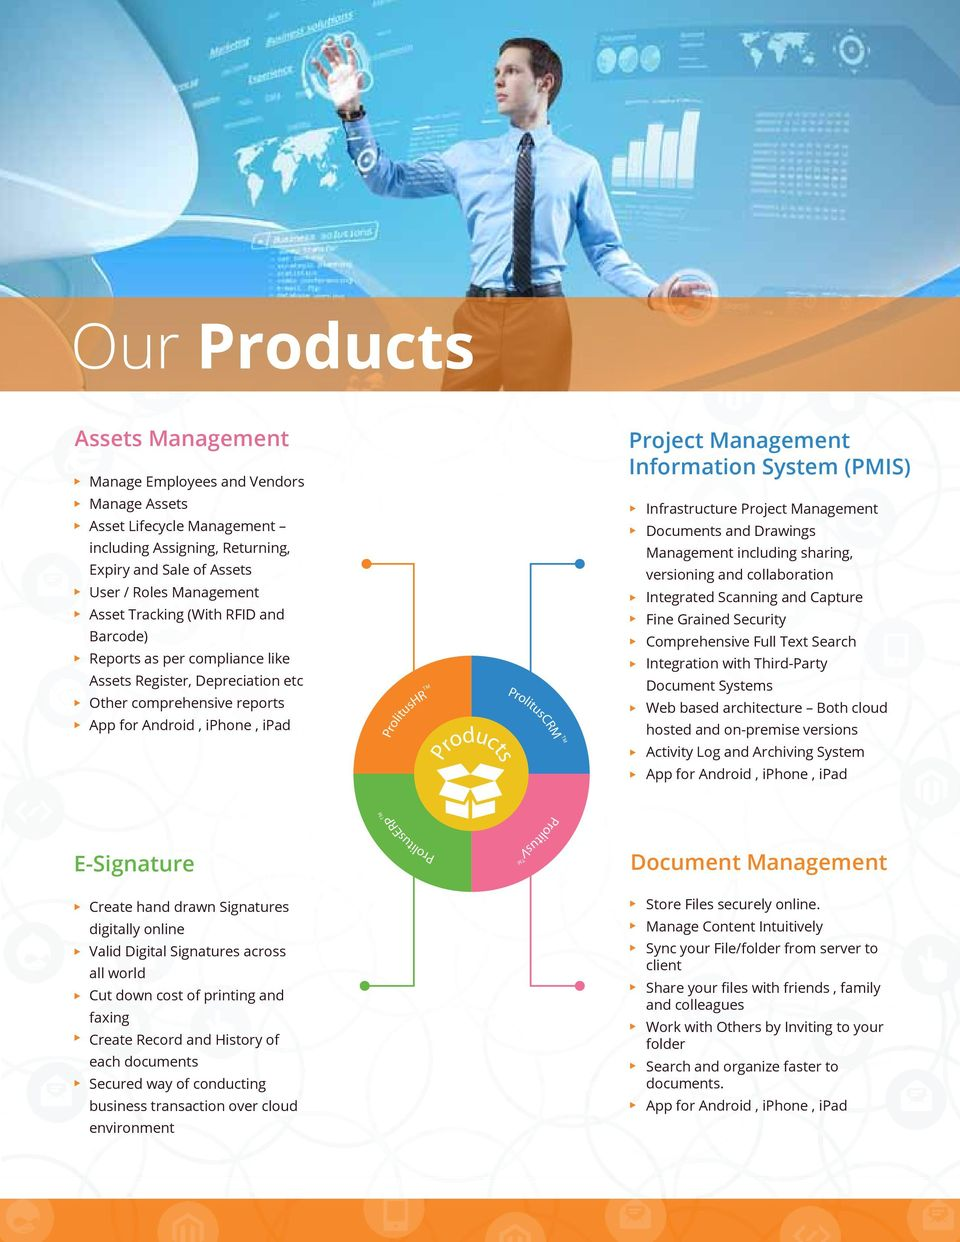 Management Information System (PMIS) Infrastructure Project Management Documents and Drawings Management including sharing, versioning and collaboration Integrated Scanning and Capture Fine Grained